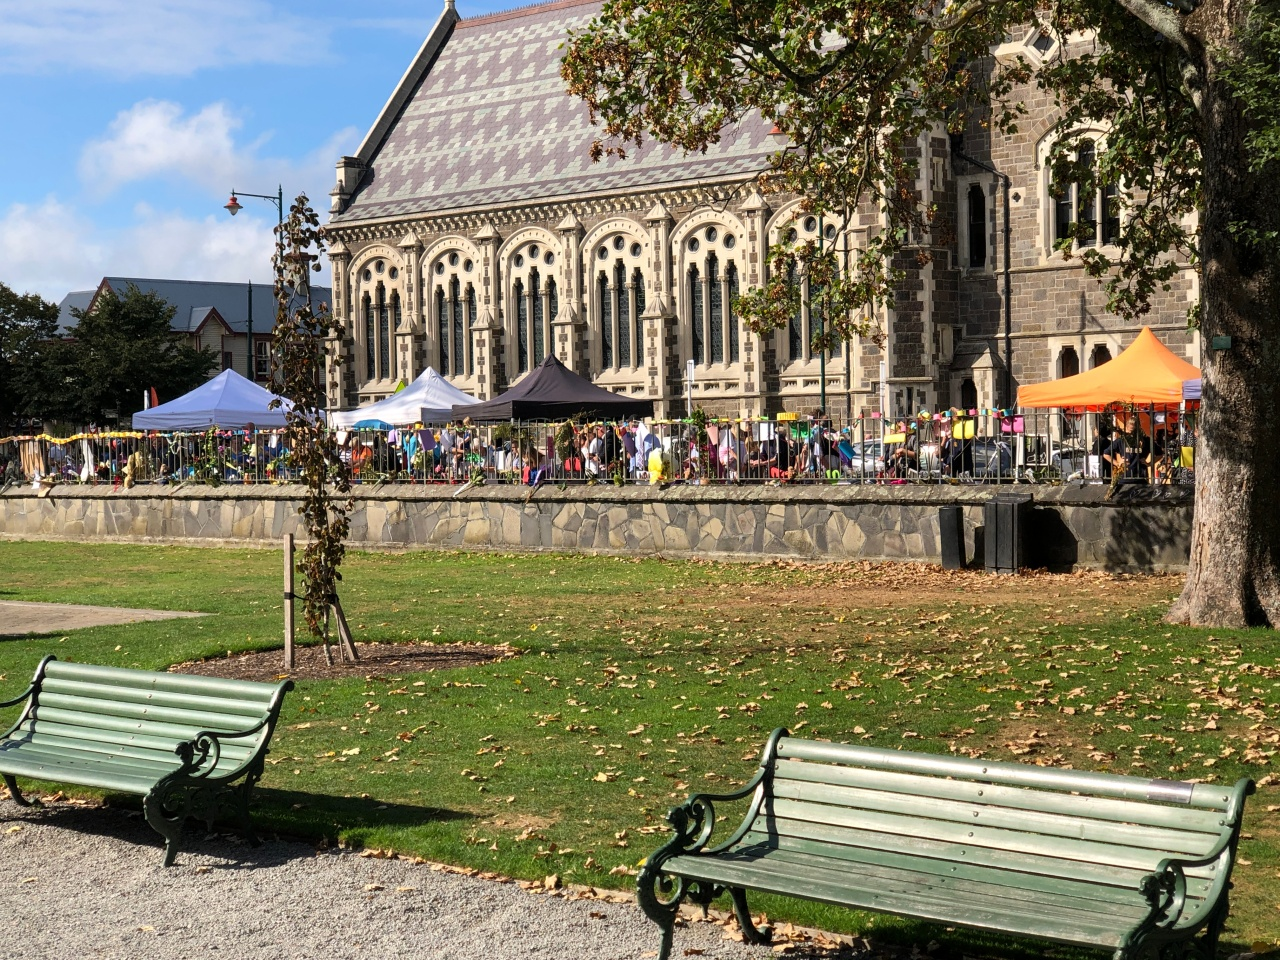 An image taken from inside the Christchurch Botanical Gardens showing the many people lined up to pay tribute to the victims of the Christchurch terrorist attacks.